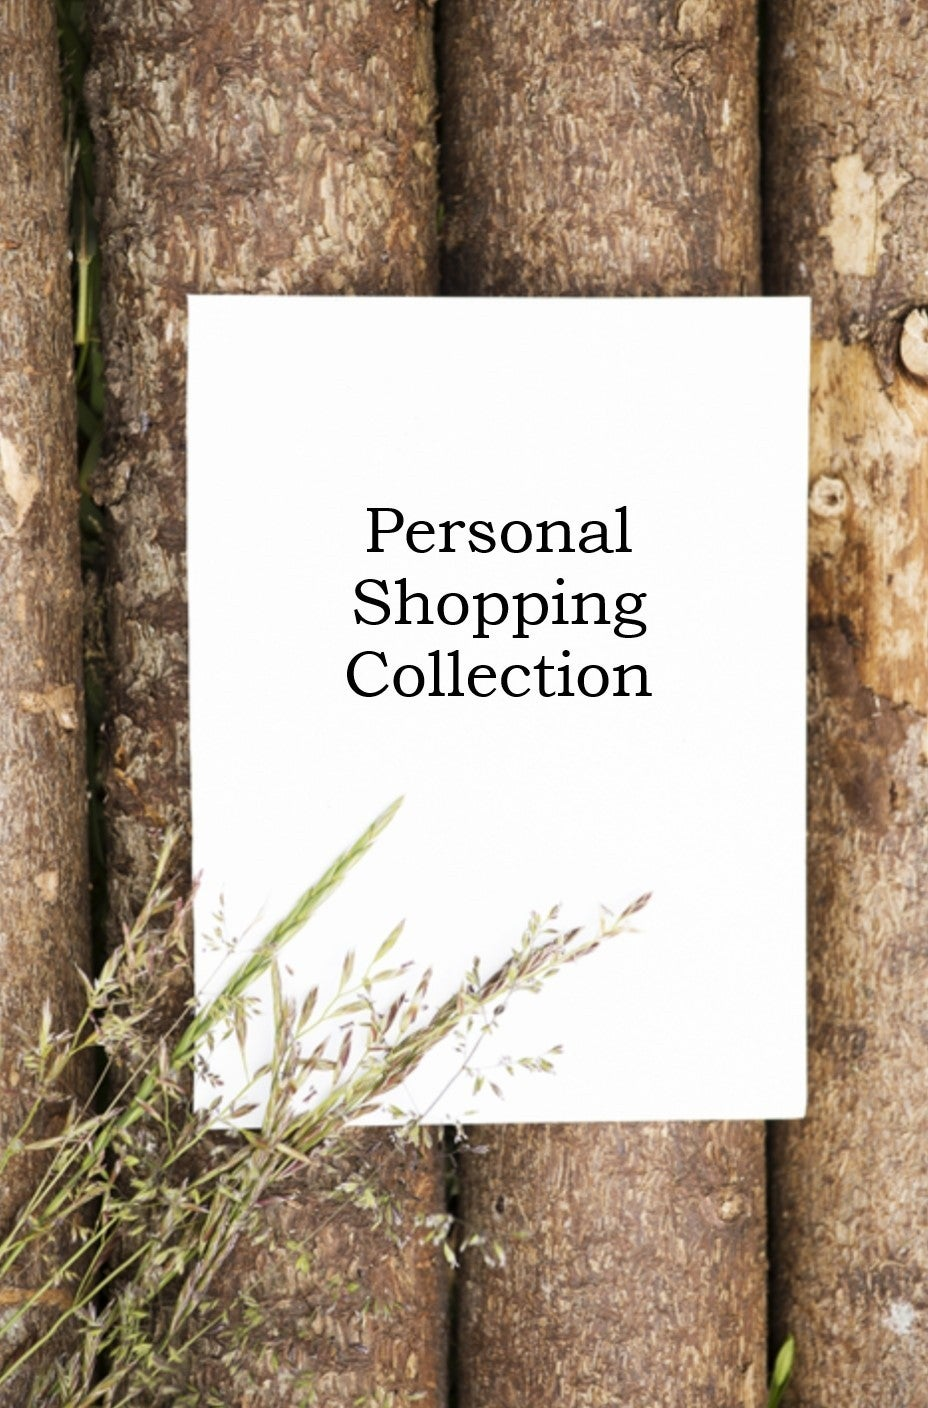 Personal Shopping Collection